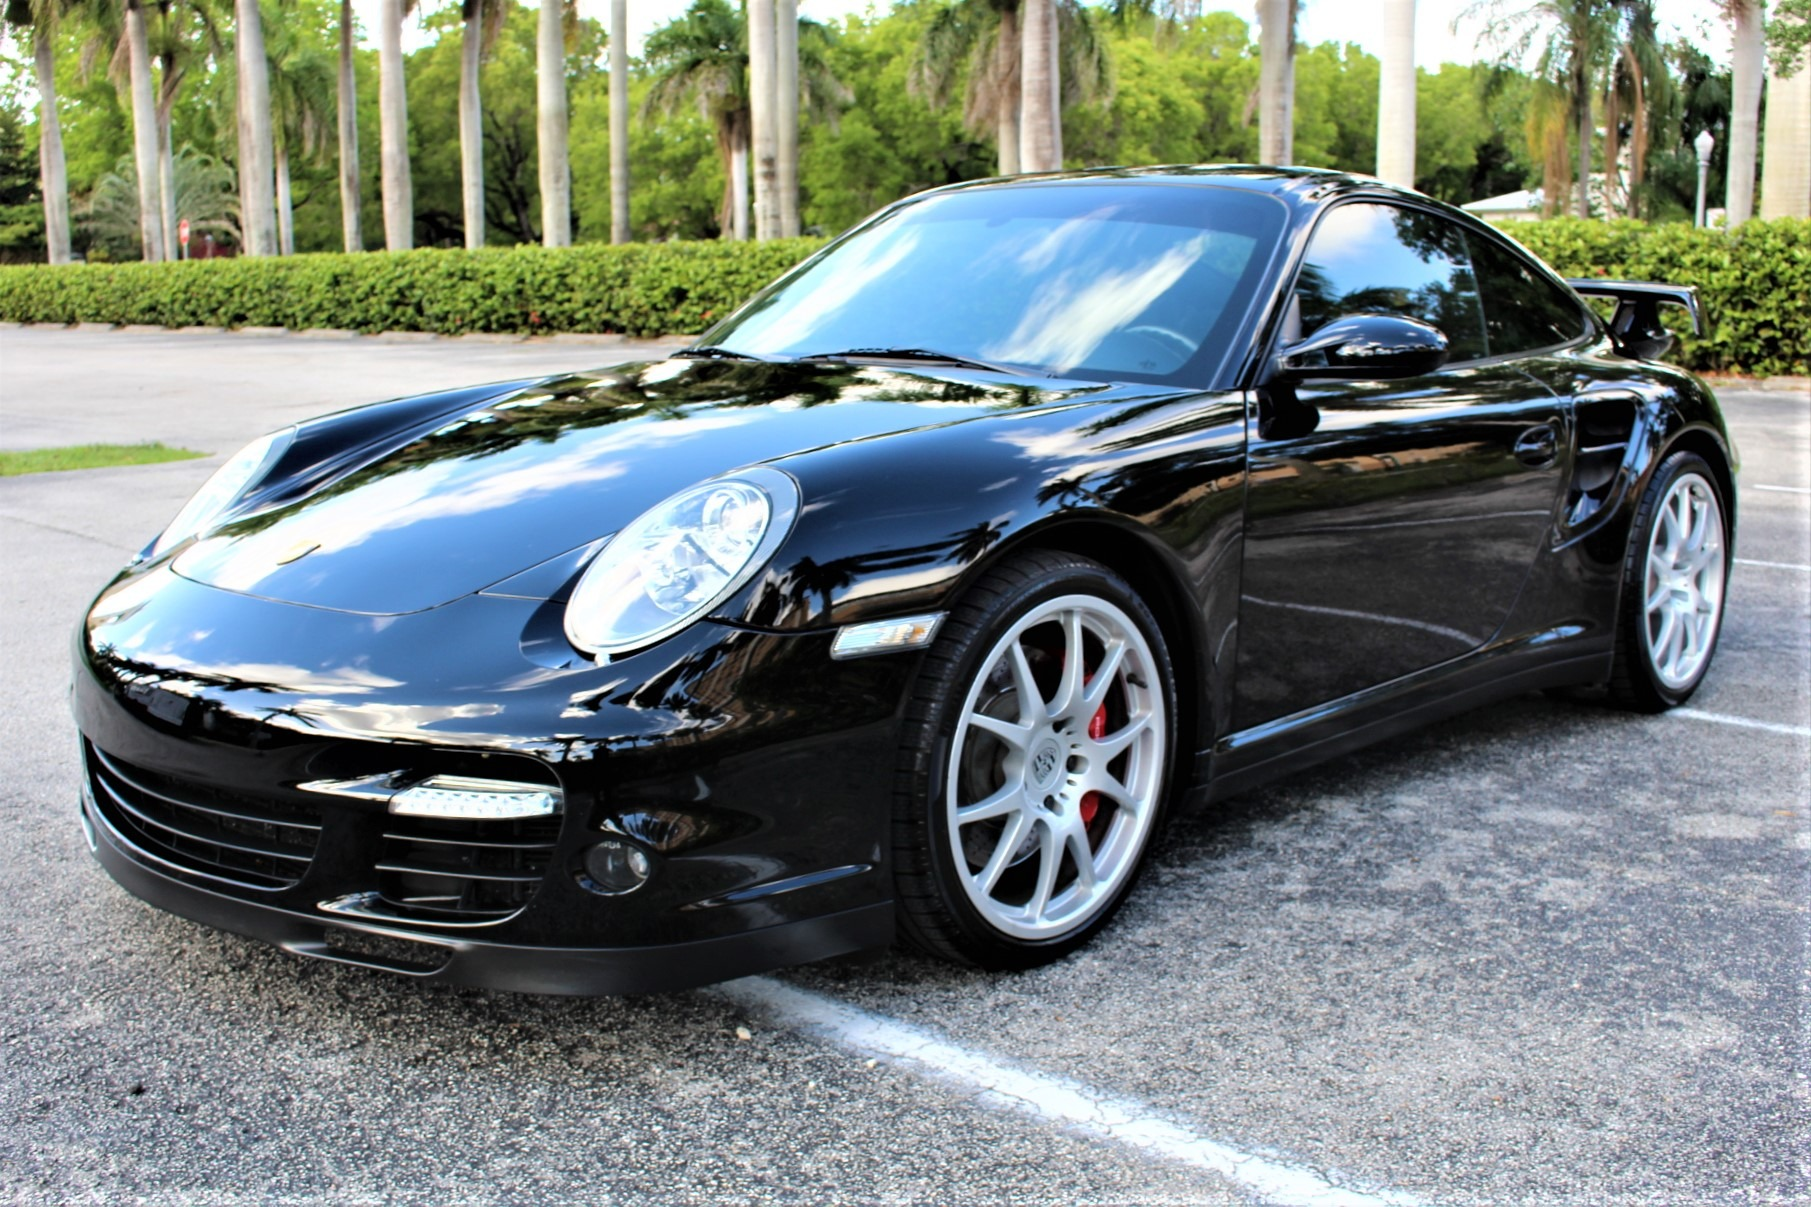 Used 2007 Porsche 911 Turbo for sale Sold at The Gables Sports Cars in Miami FL 33146 3